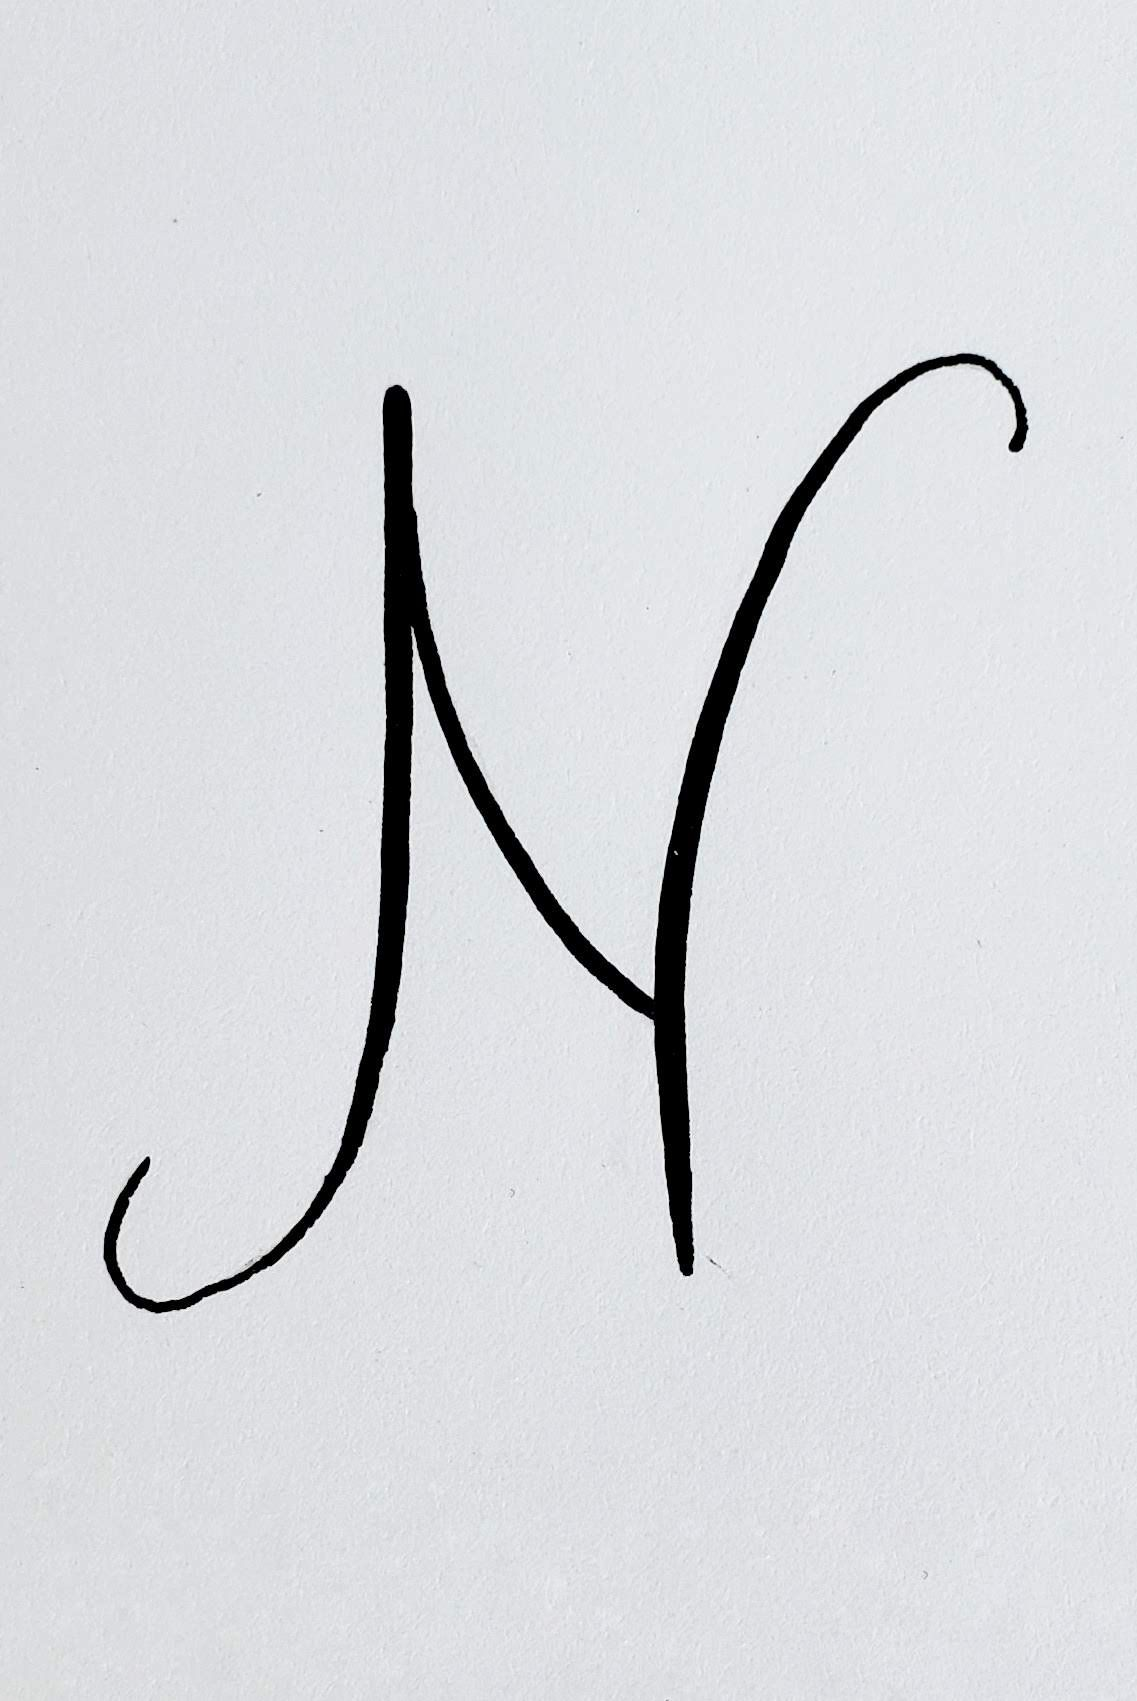 N In Calligraphy : calligraphy, Letter, Things, Night, Style, Study, Lettering,, Alphabet, Style,